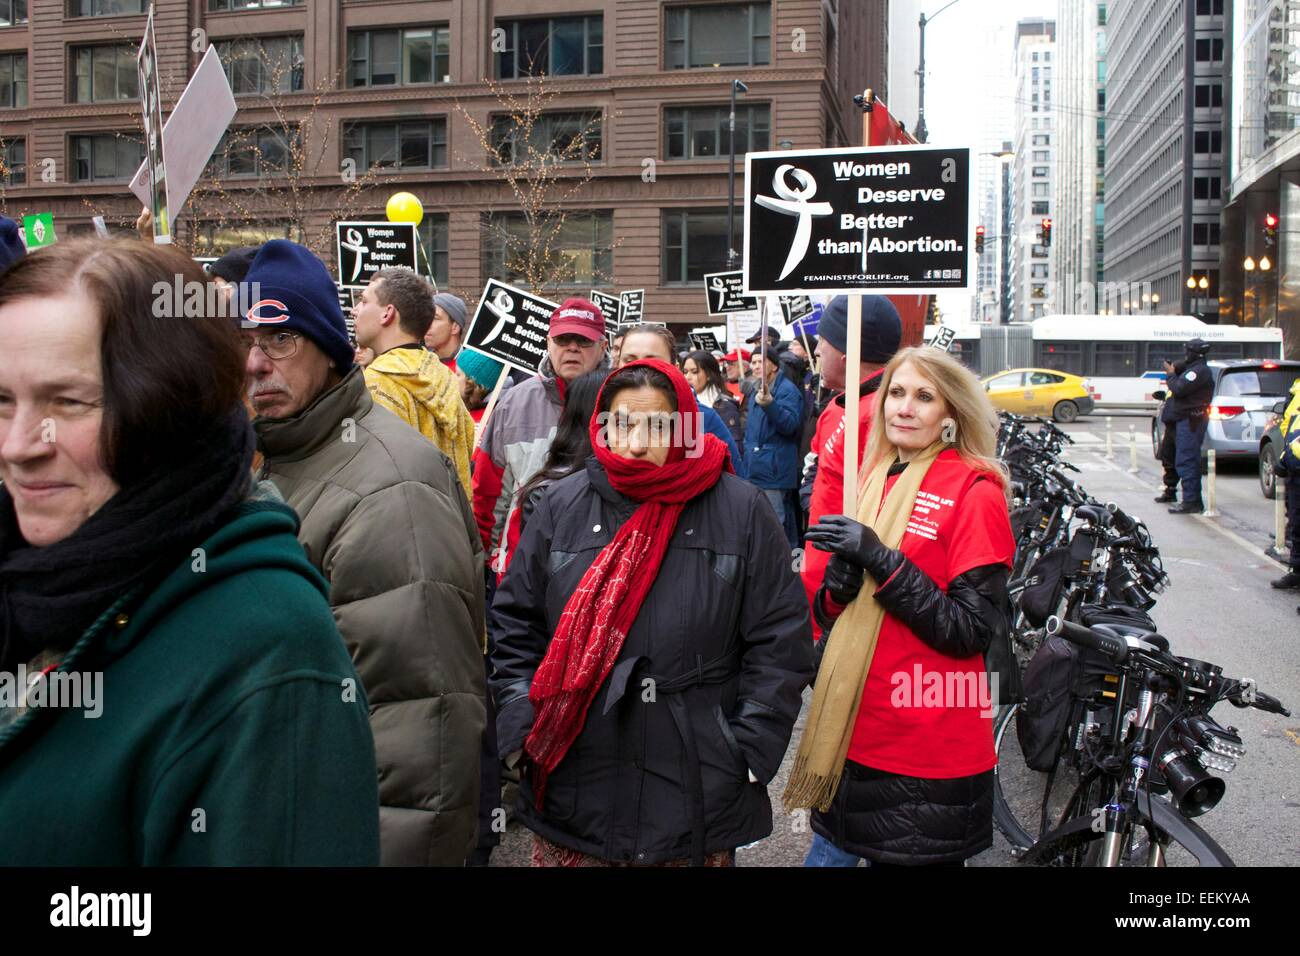 Anti-abortion protesters. Chicago, Illinois. - Stock Image